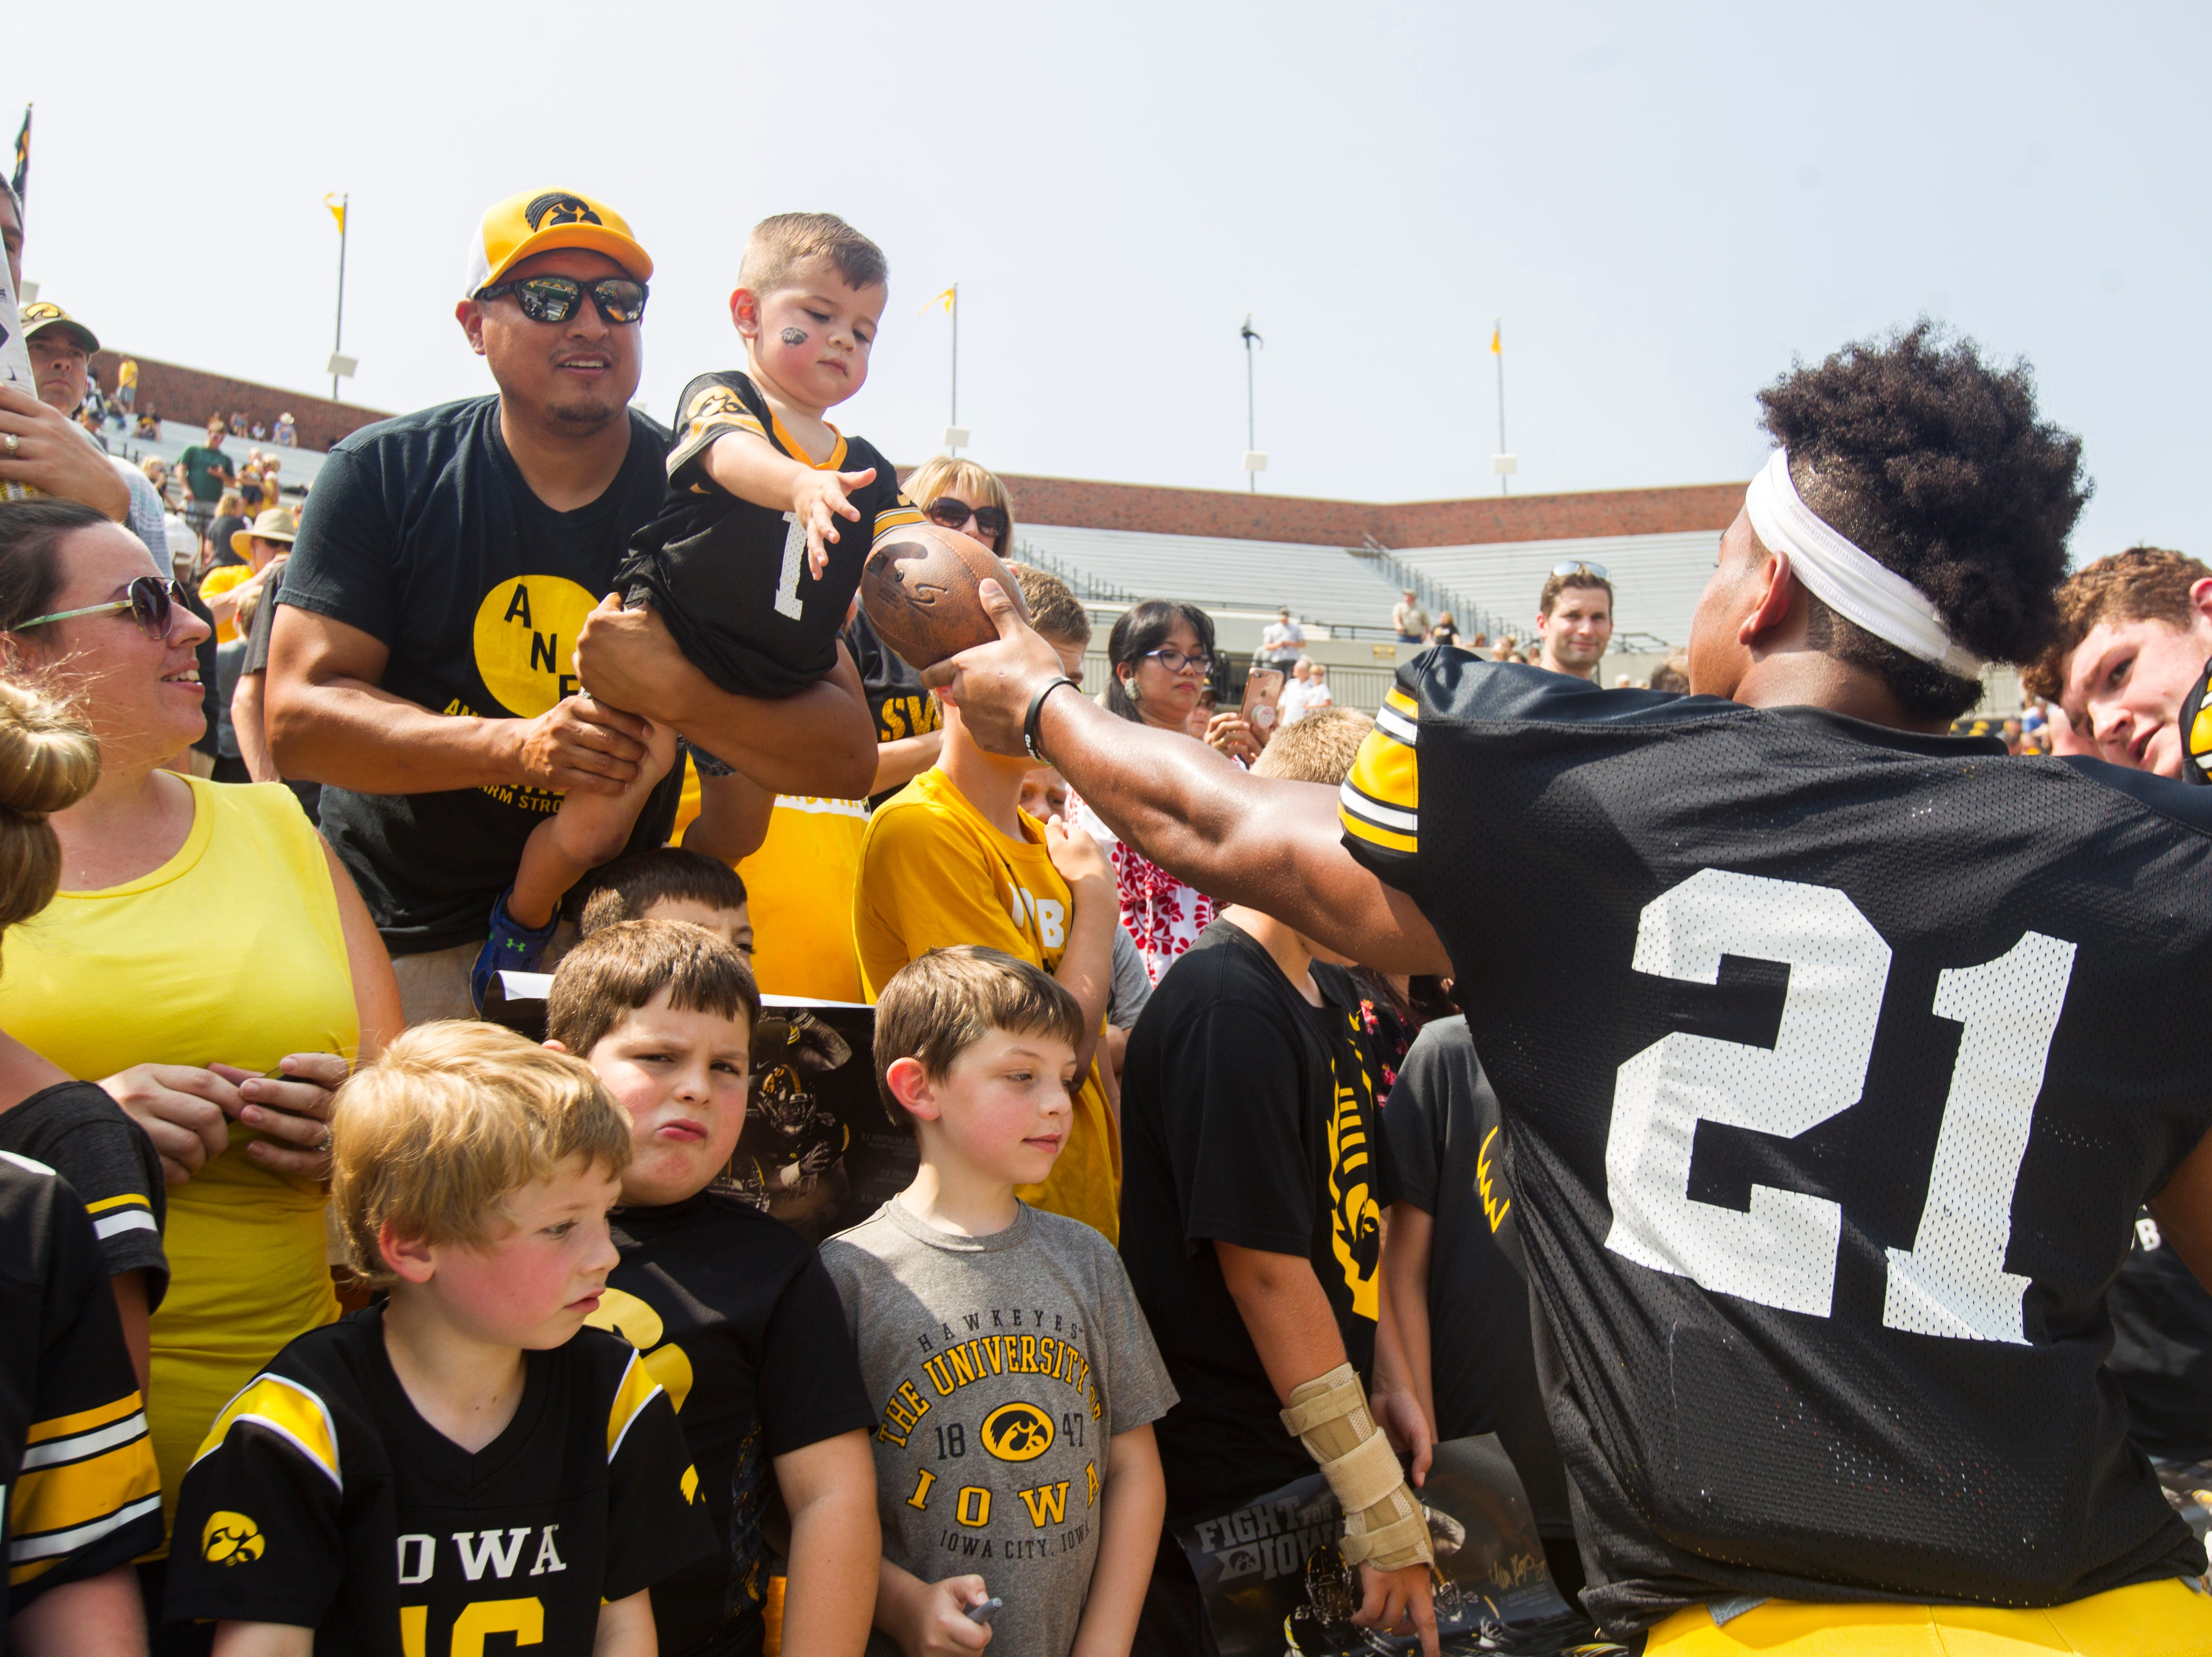 Iowa running back Ivory Kelly-Martin hands a signed football to a young fan during a Kids Day practice on Saturday, Aug. 11, 2018, at Kinnick Stadium in Iowa City.